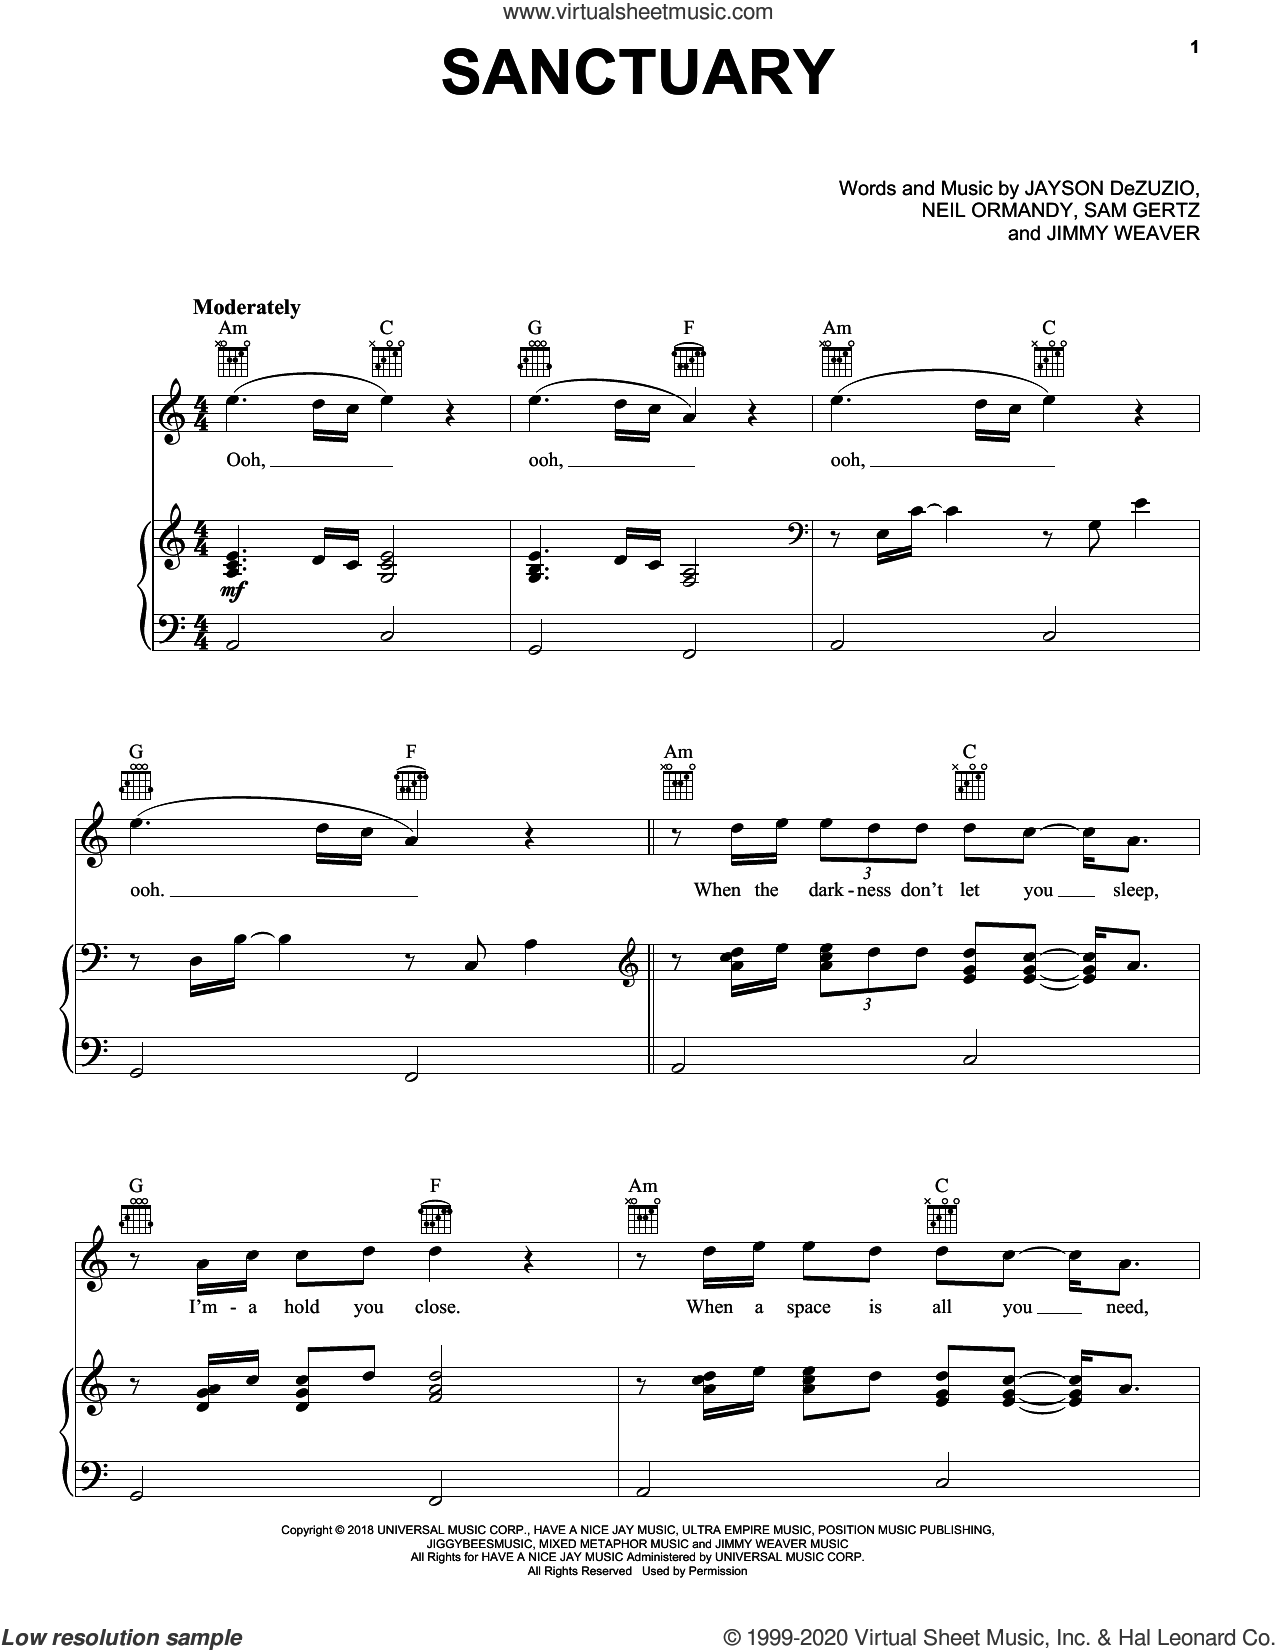 Sanctuary sheet music for voice, piano or guitar by Welshly Arms, Jayson Dezuzio, Jimmy Weaver, Neil Ormandy and Samuel Getz, intermediate skill level